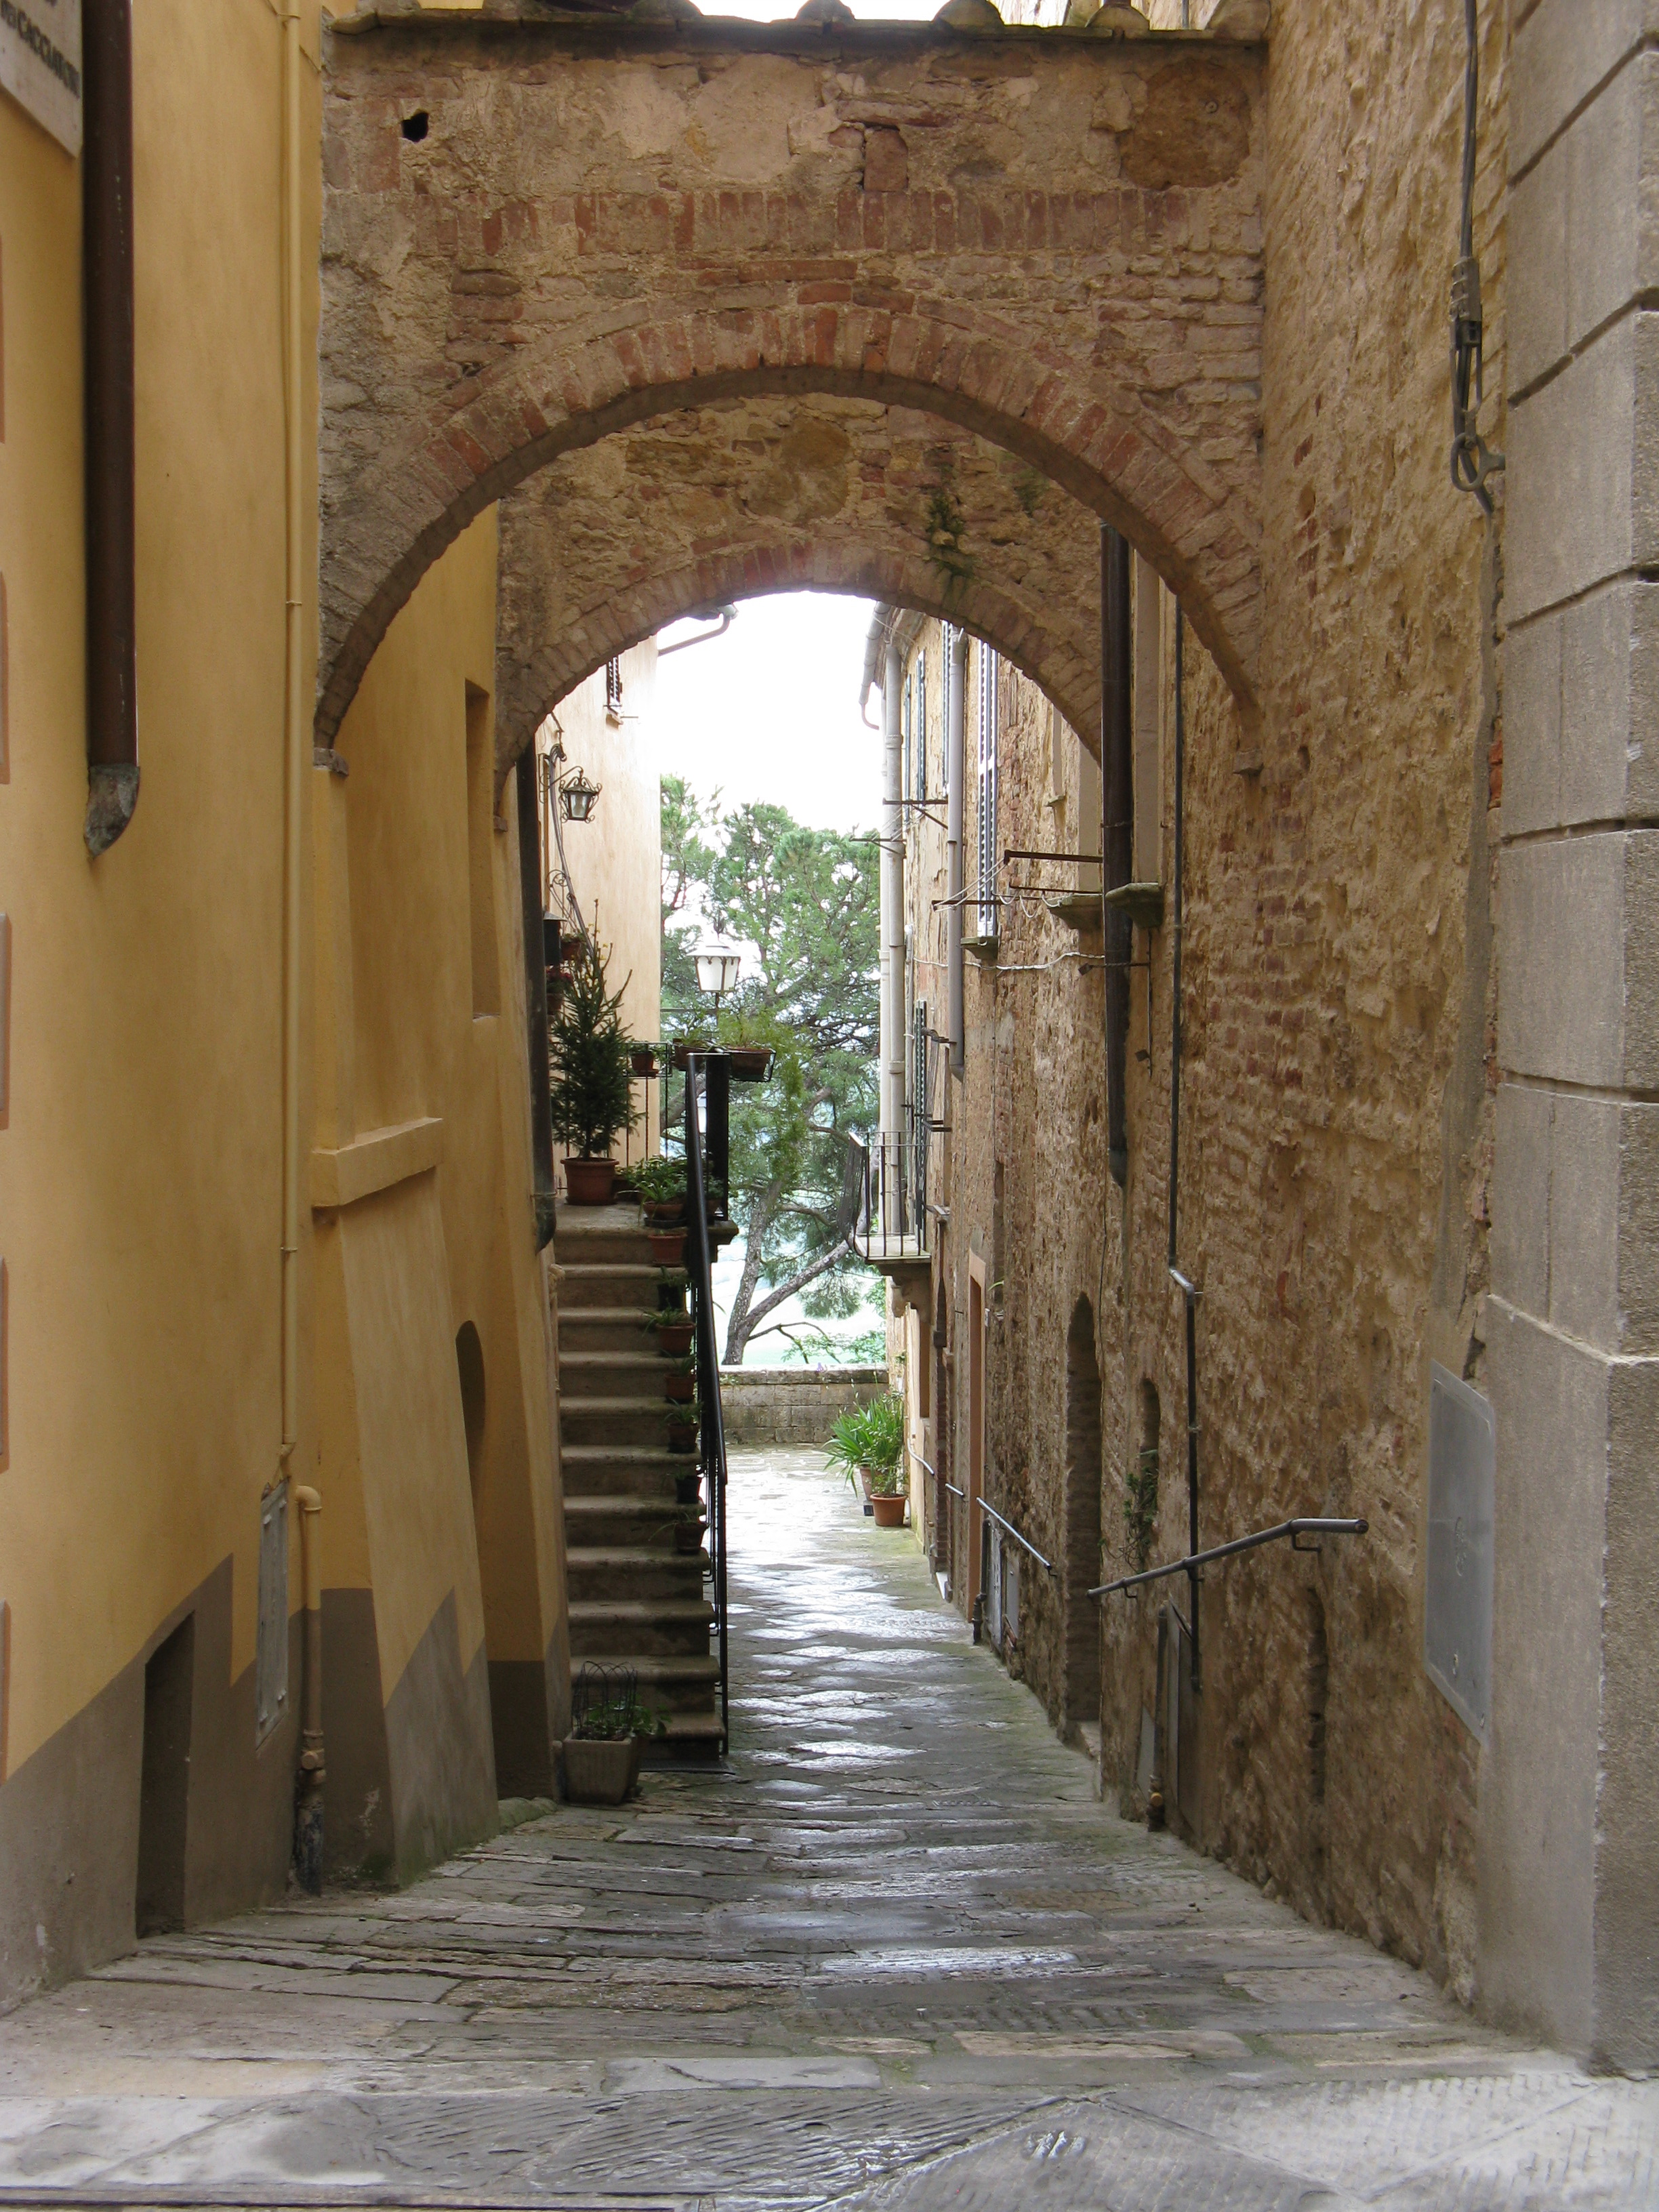 Exploring a narrow alley in Montepulciano